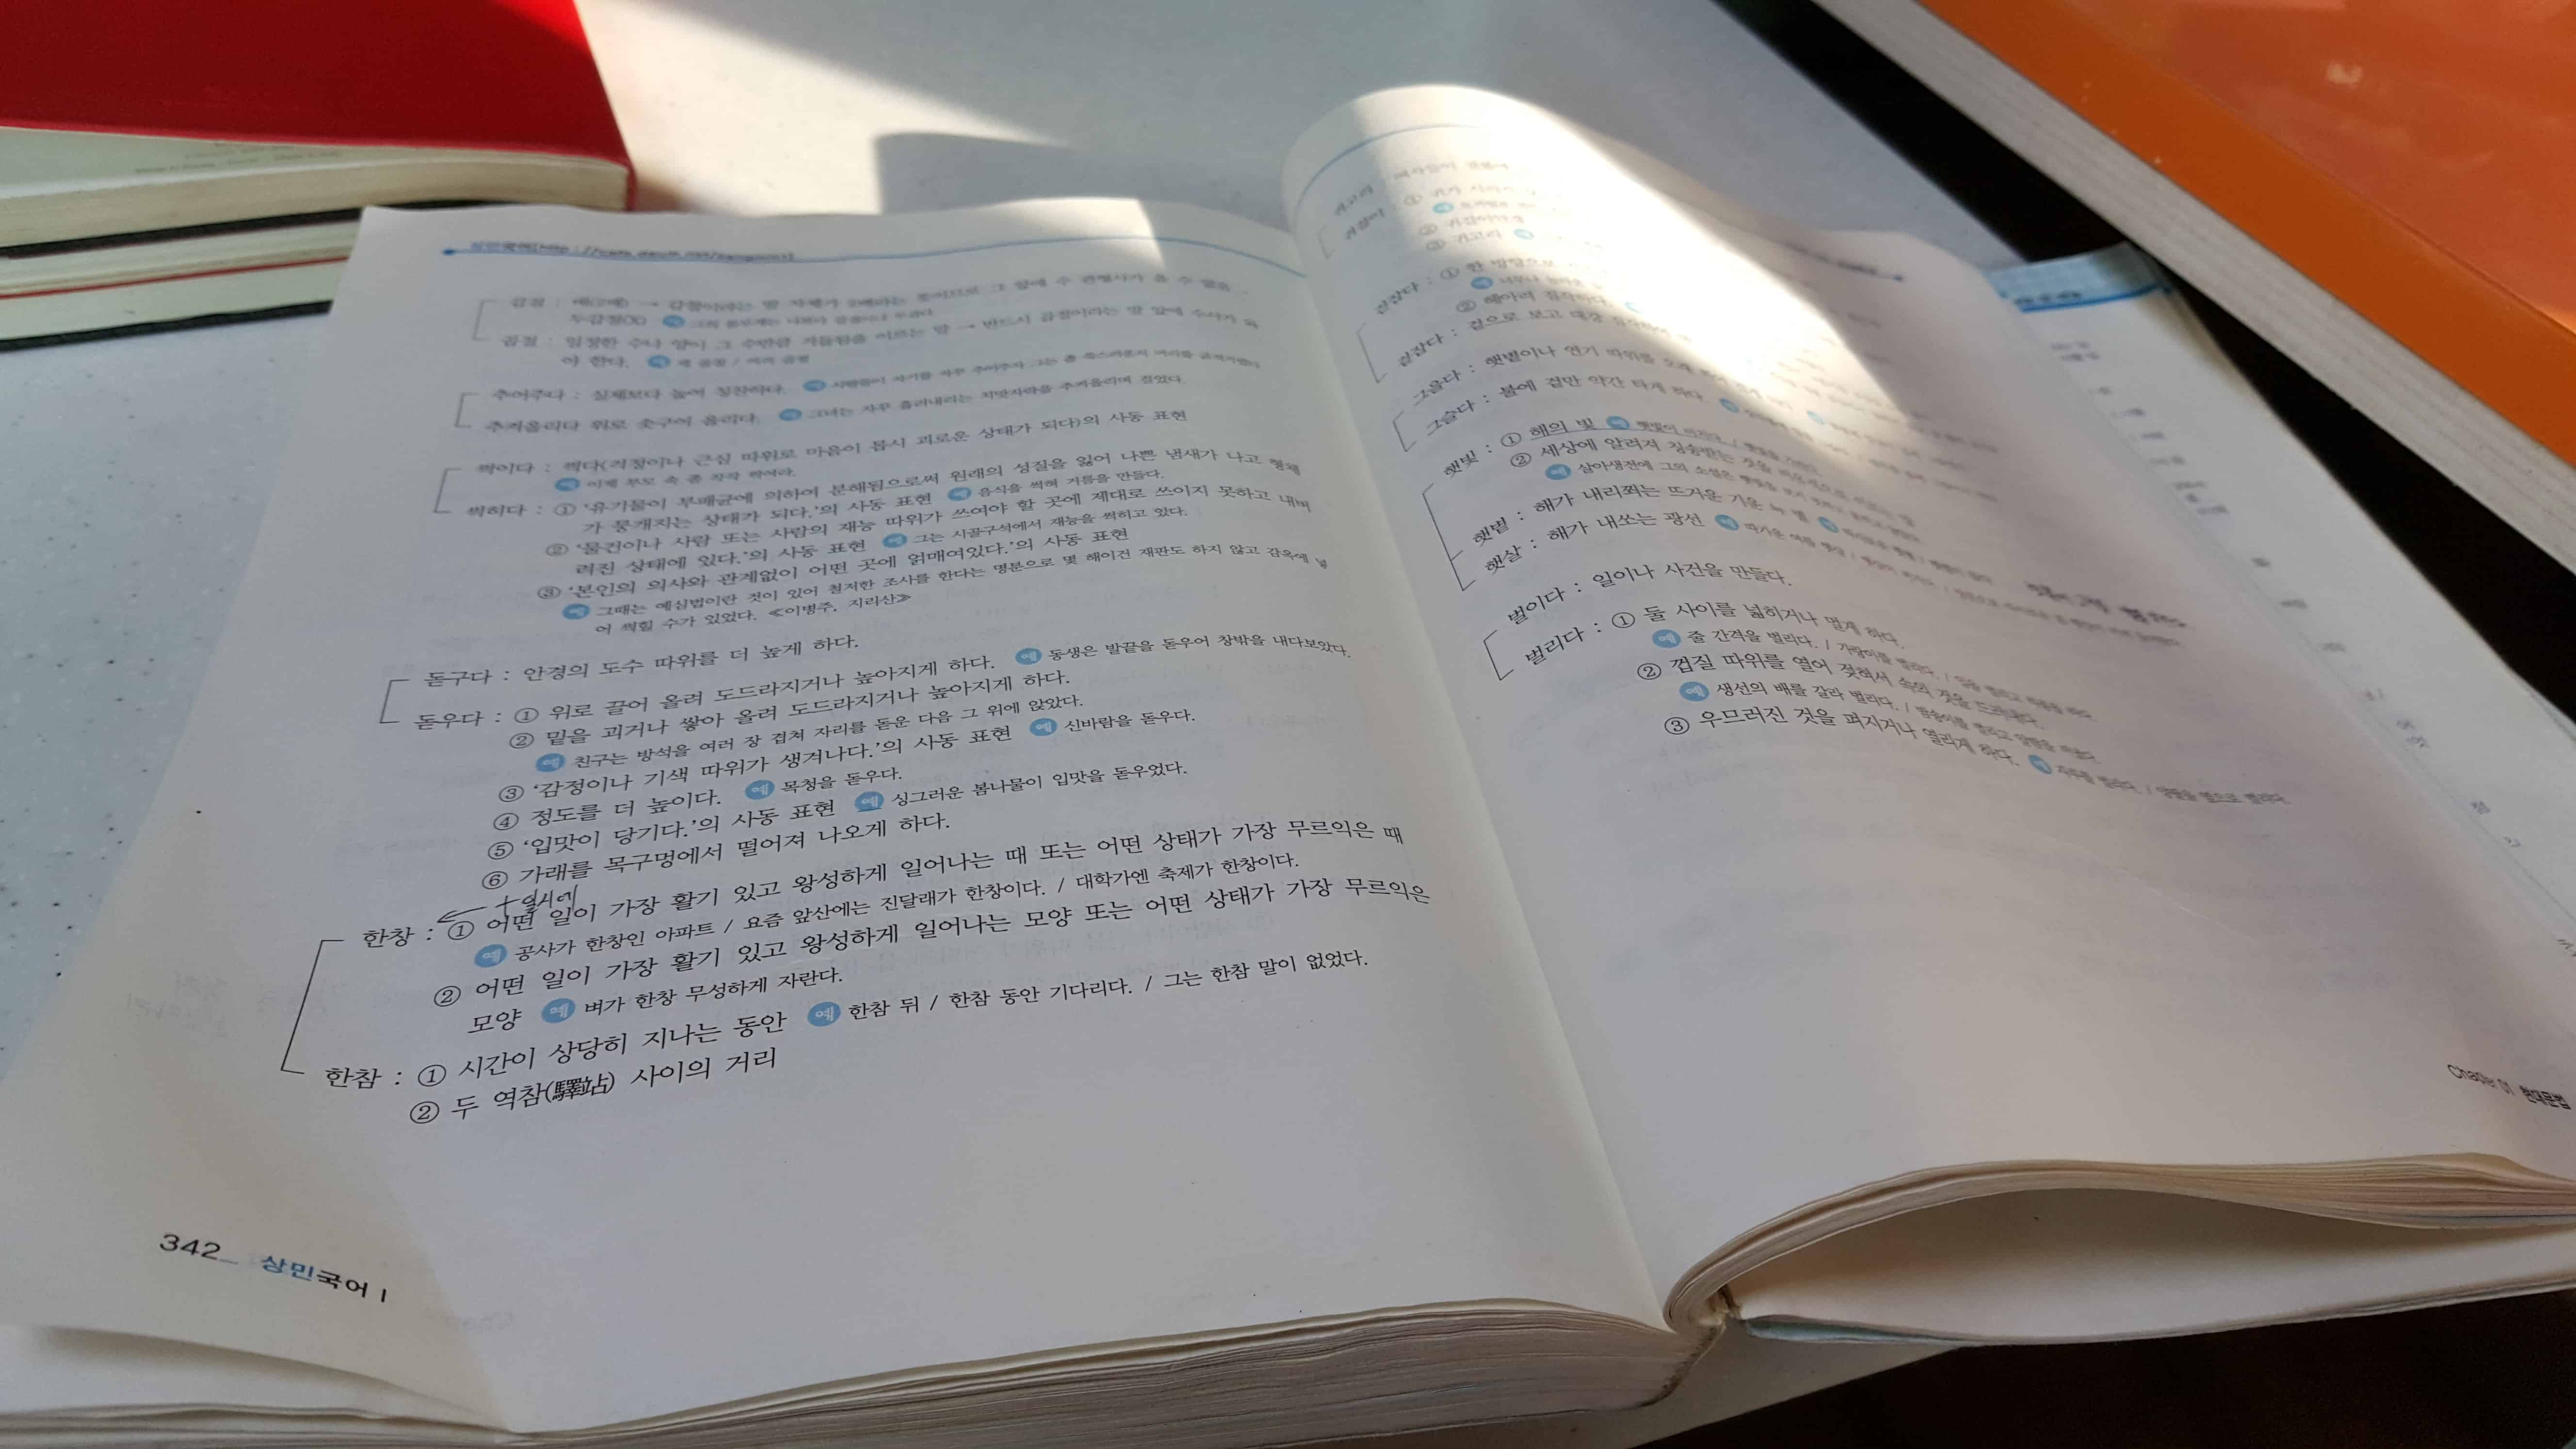 Korean spelling and other notation